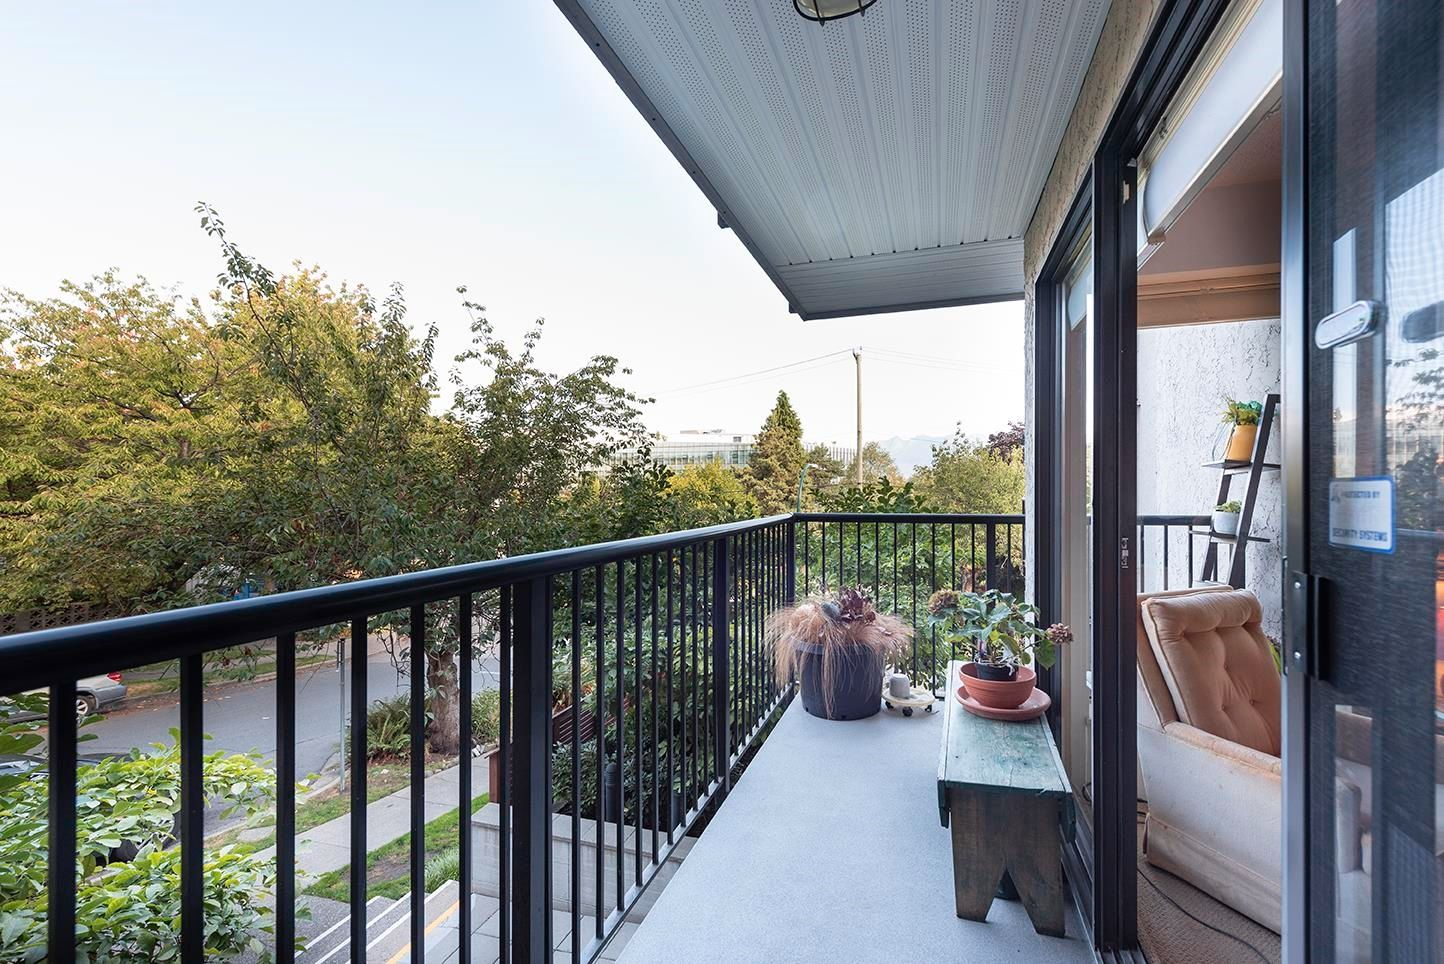 Main Photo: 203 2142 CAROLINA Street in Vancouver: Mount Pleasant VE Condo for sale (Vancouver East)  : MLS®# R2615633